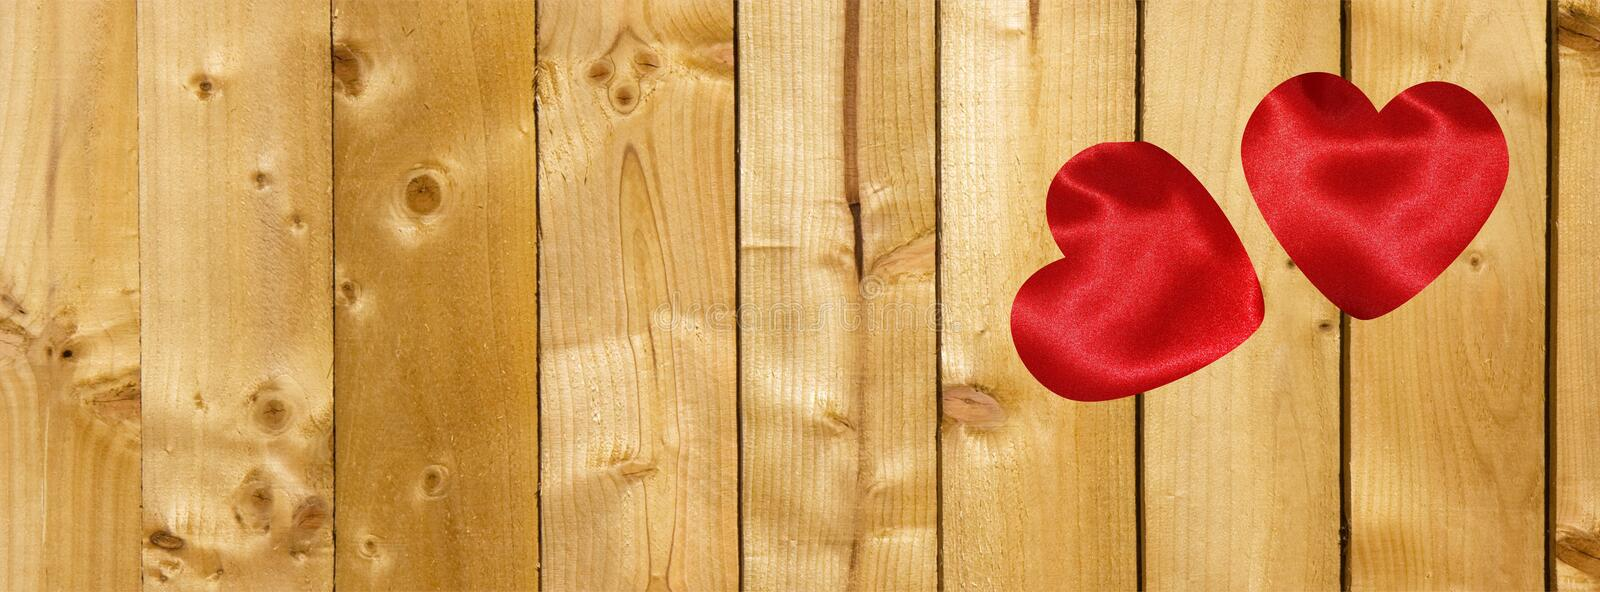 Valentine Facebook cover with hearts on  wooden planks background royalty free stock images